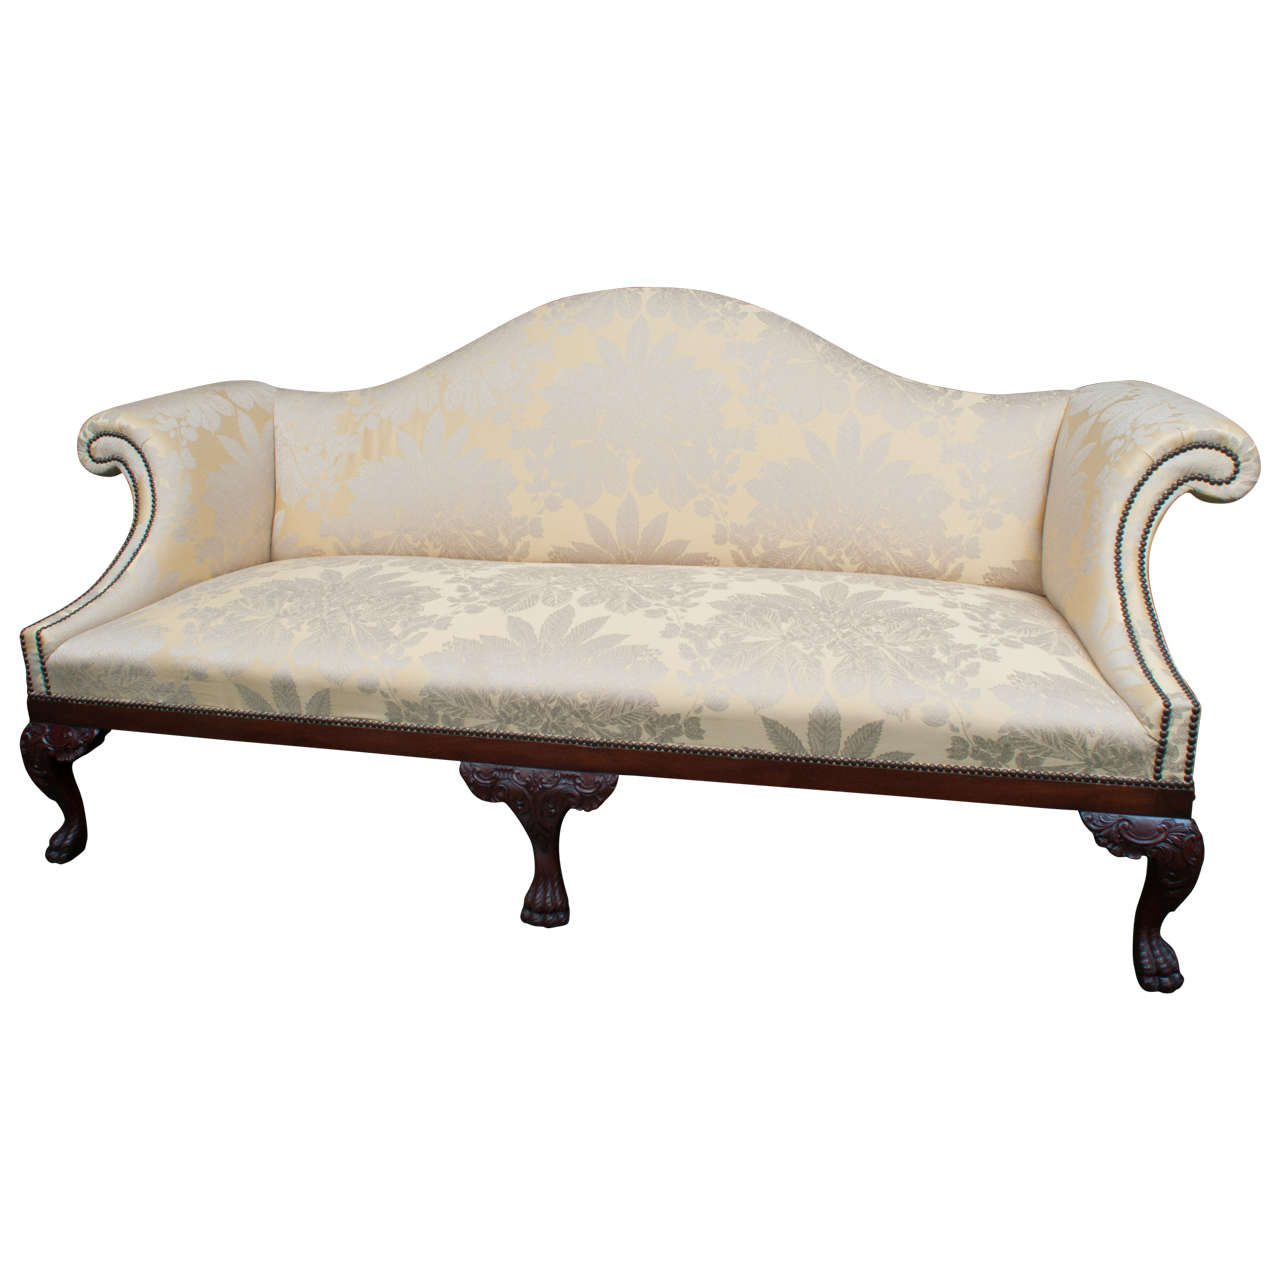 Large Georgian Style Chippendale Camelback Sofa England Or Ireland Circa 1890 At 1stdibs